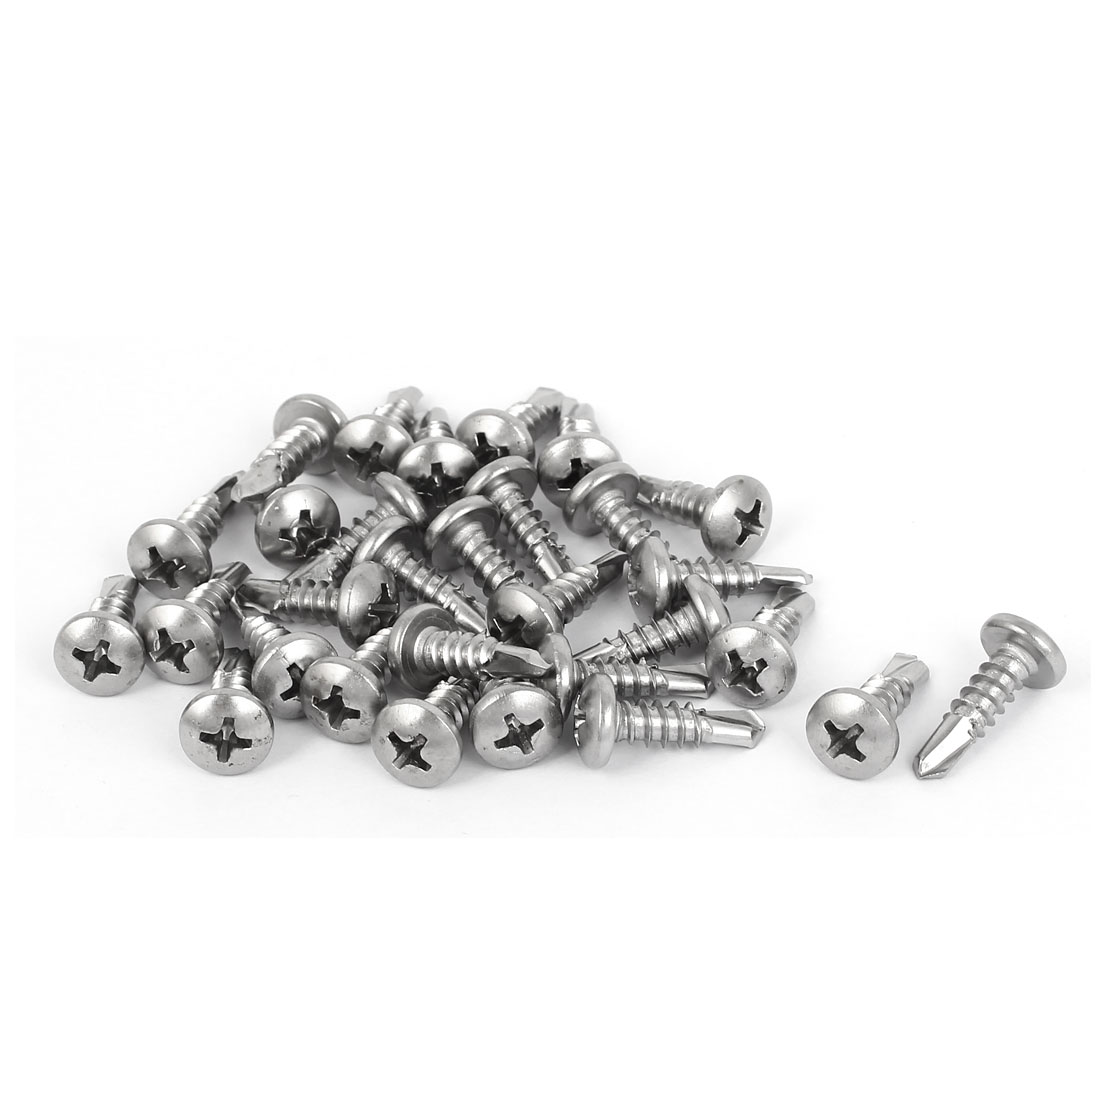 Uxcell M4.8x16mm #10 Male Thread Pan Head Self Tapping Drilling Screws (30-pack)